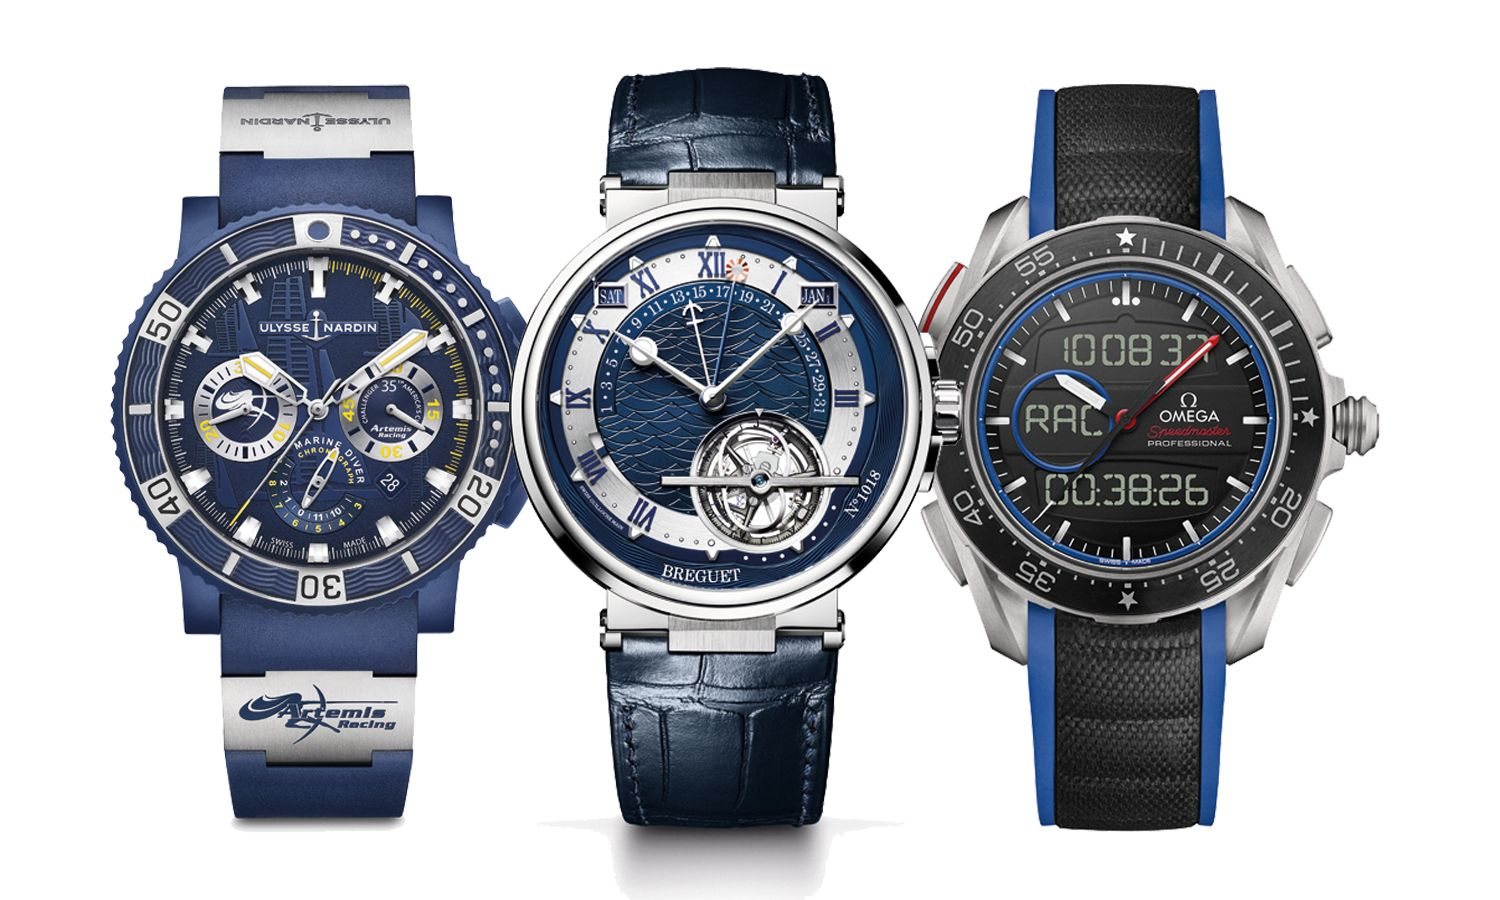 7 Nautical Watches For The Sailing Enthusiast